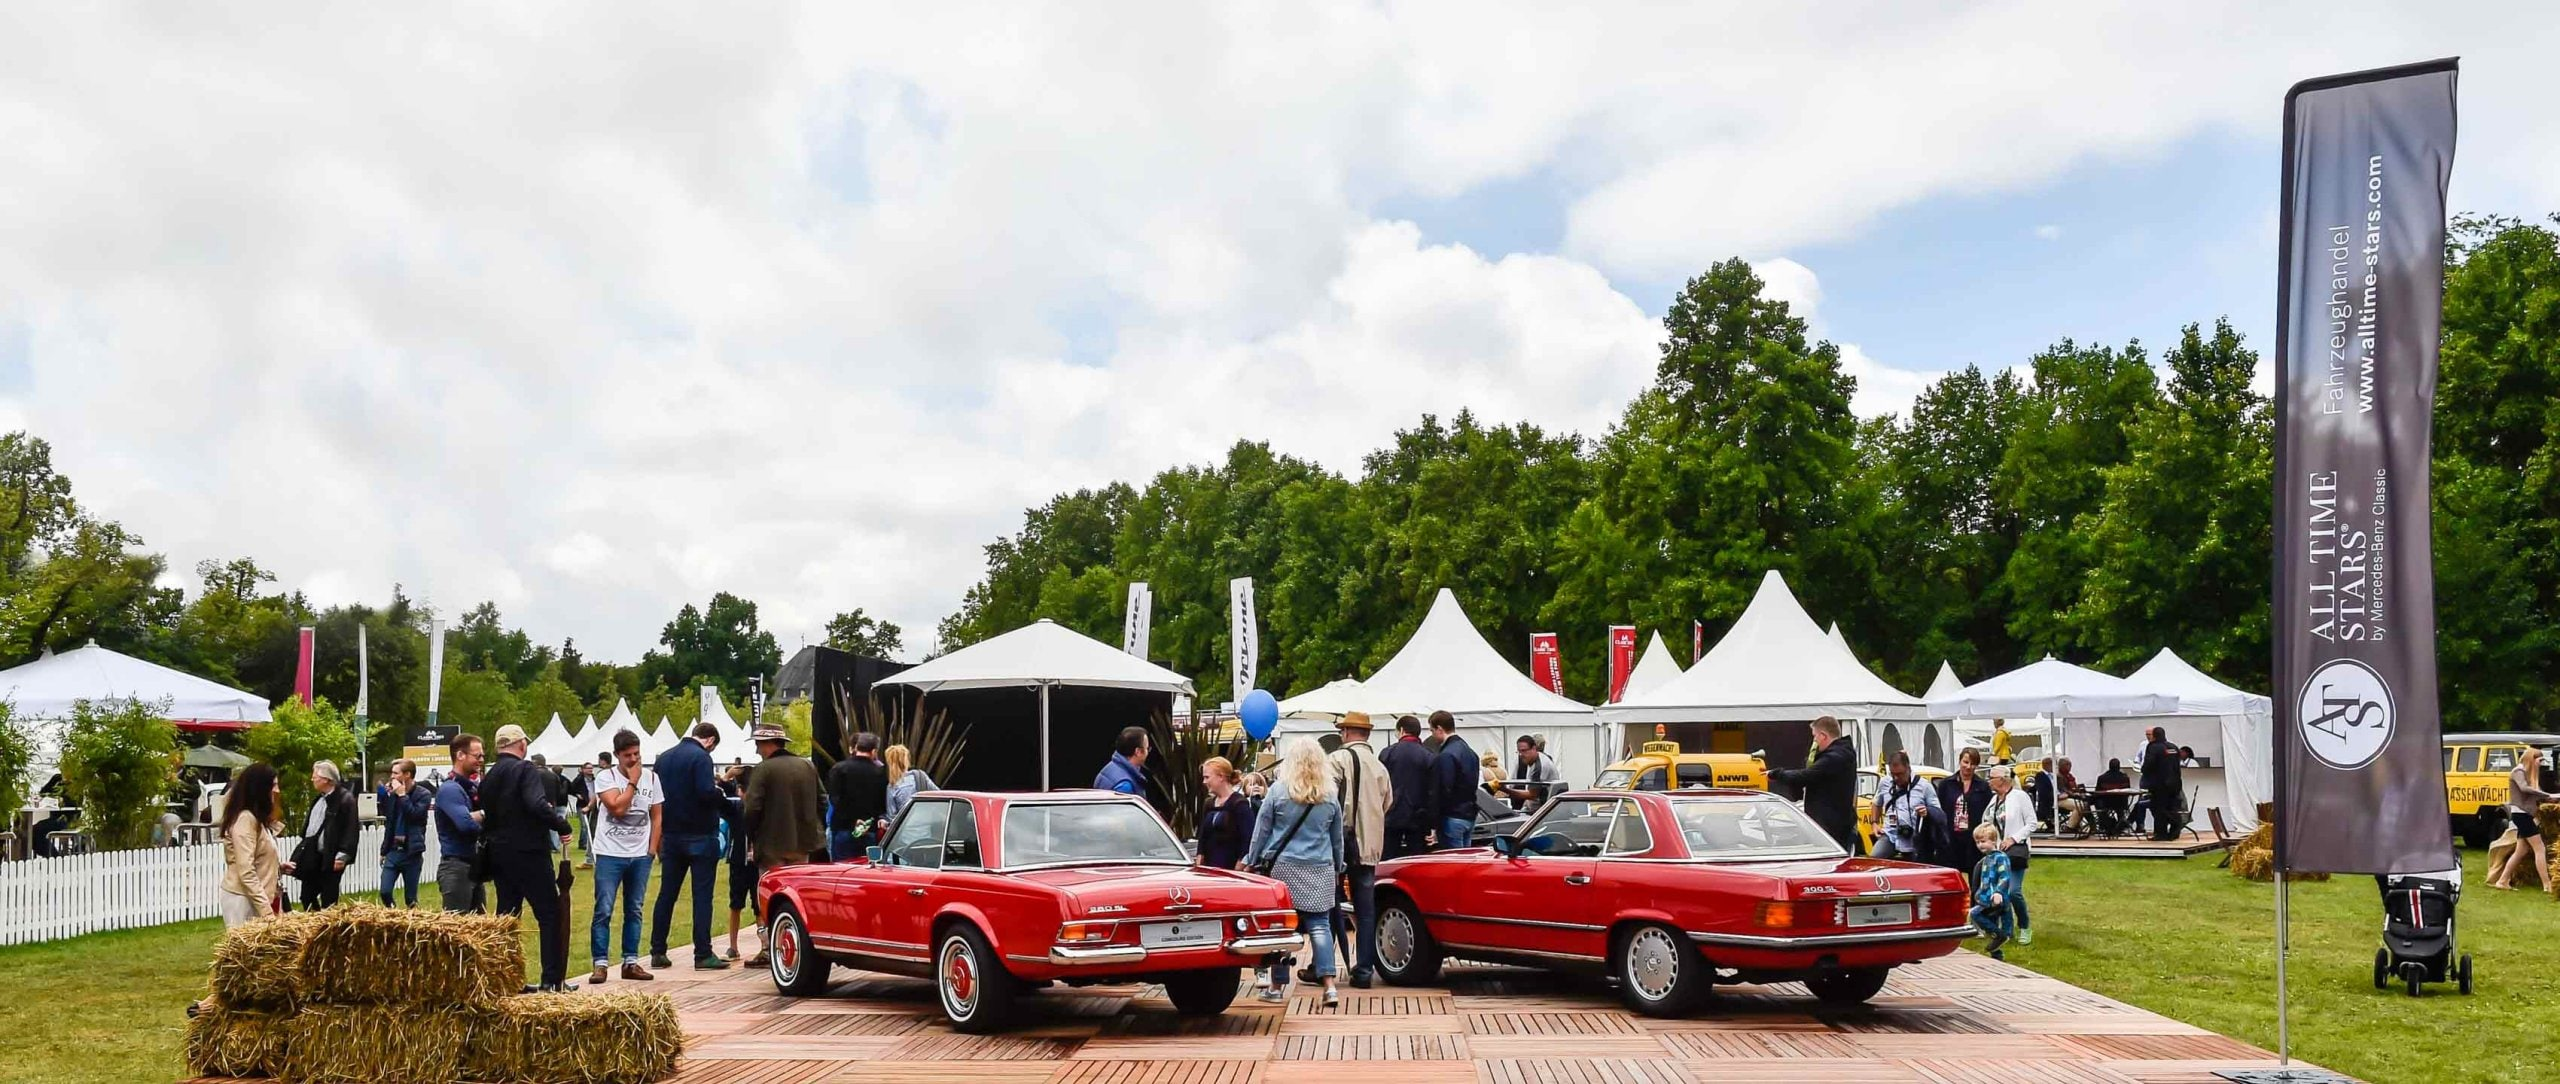 Vehicle trading platform ALL TIME STARS by Mercedes-Benz Classic at Classic Days Schloss Dyck 2017.